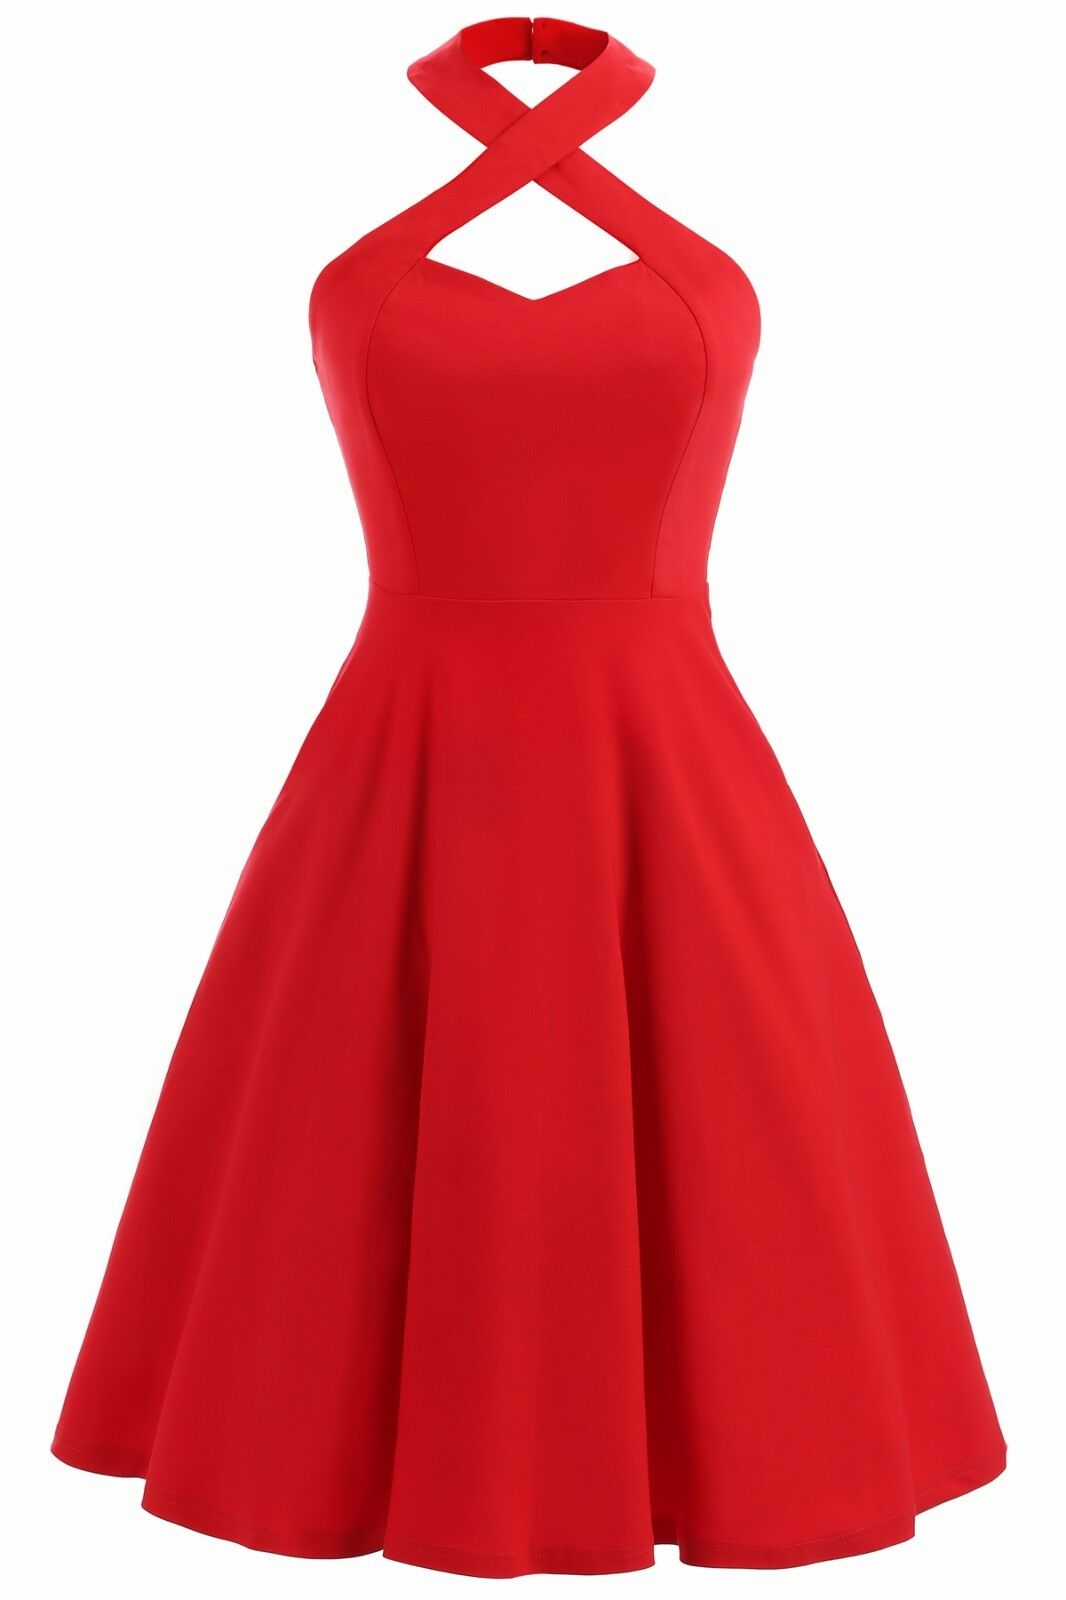 Gigileer Damen Kleid Retro Vintage Rockabilly Cocktail Partei Rot ...